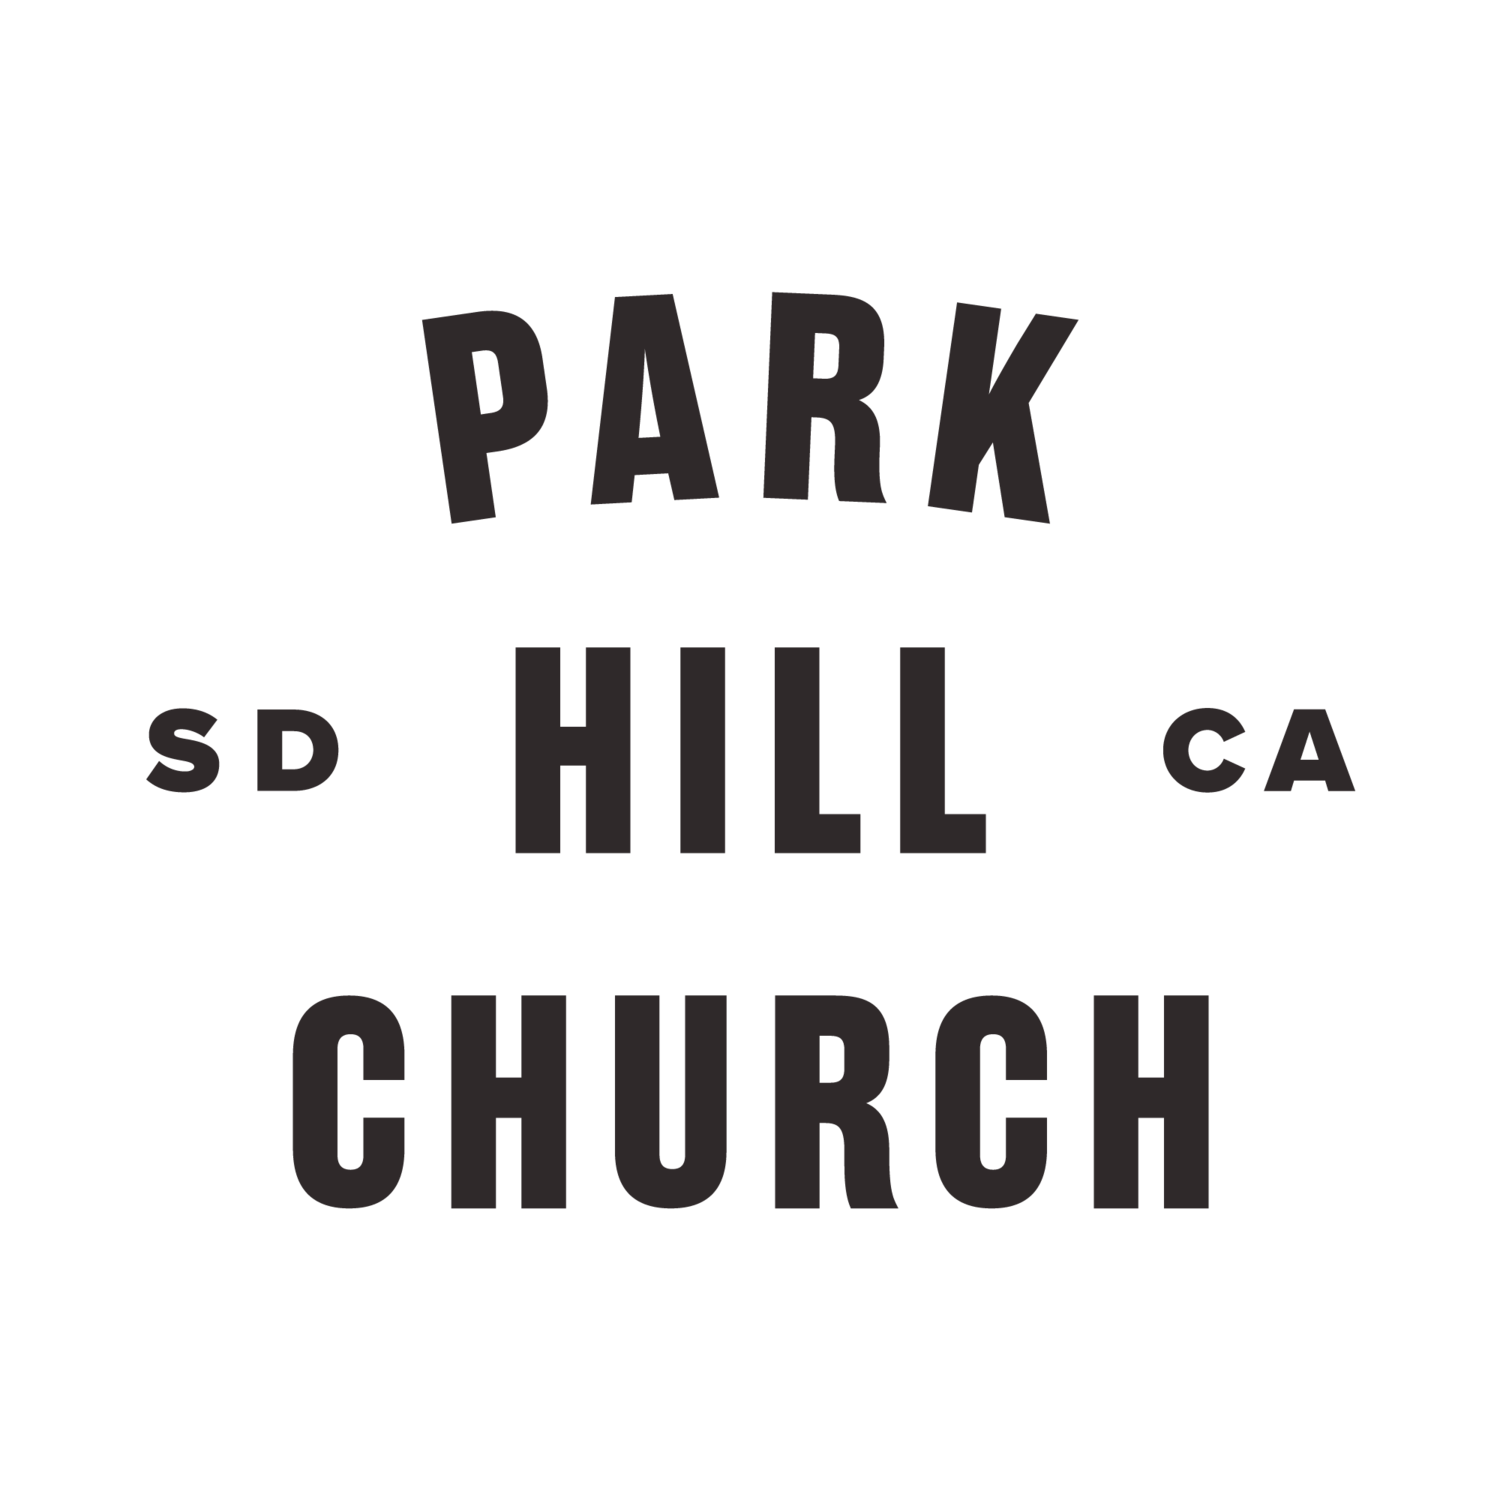 Park Hill Church